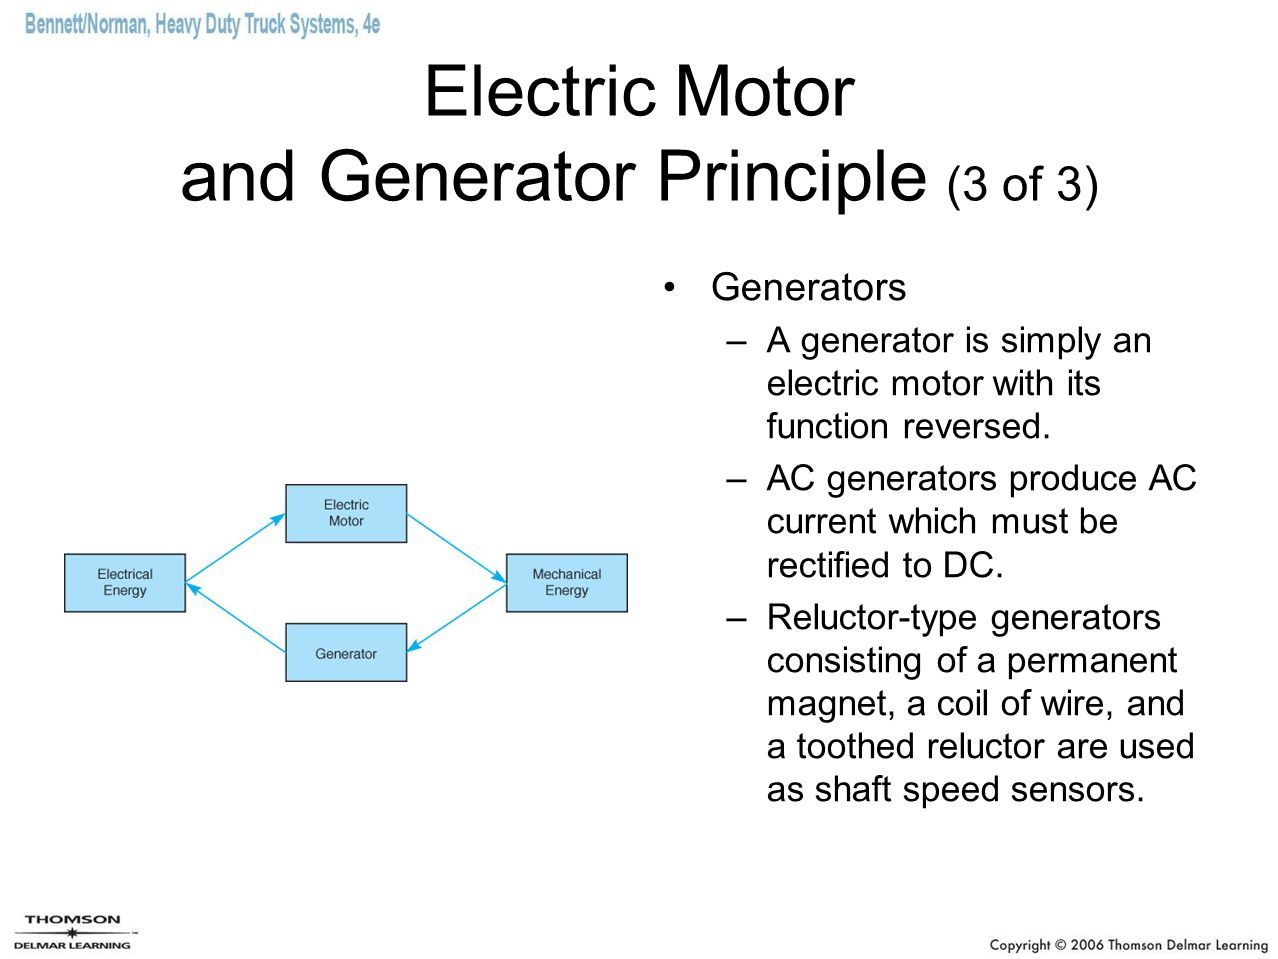 Electric Motor and Generator Principle (3 of 3)